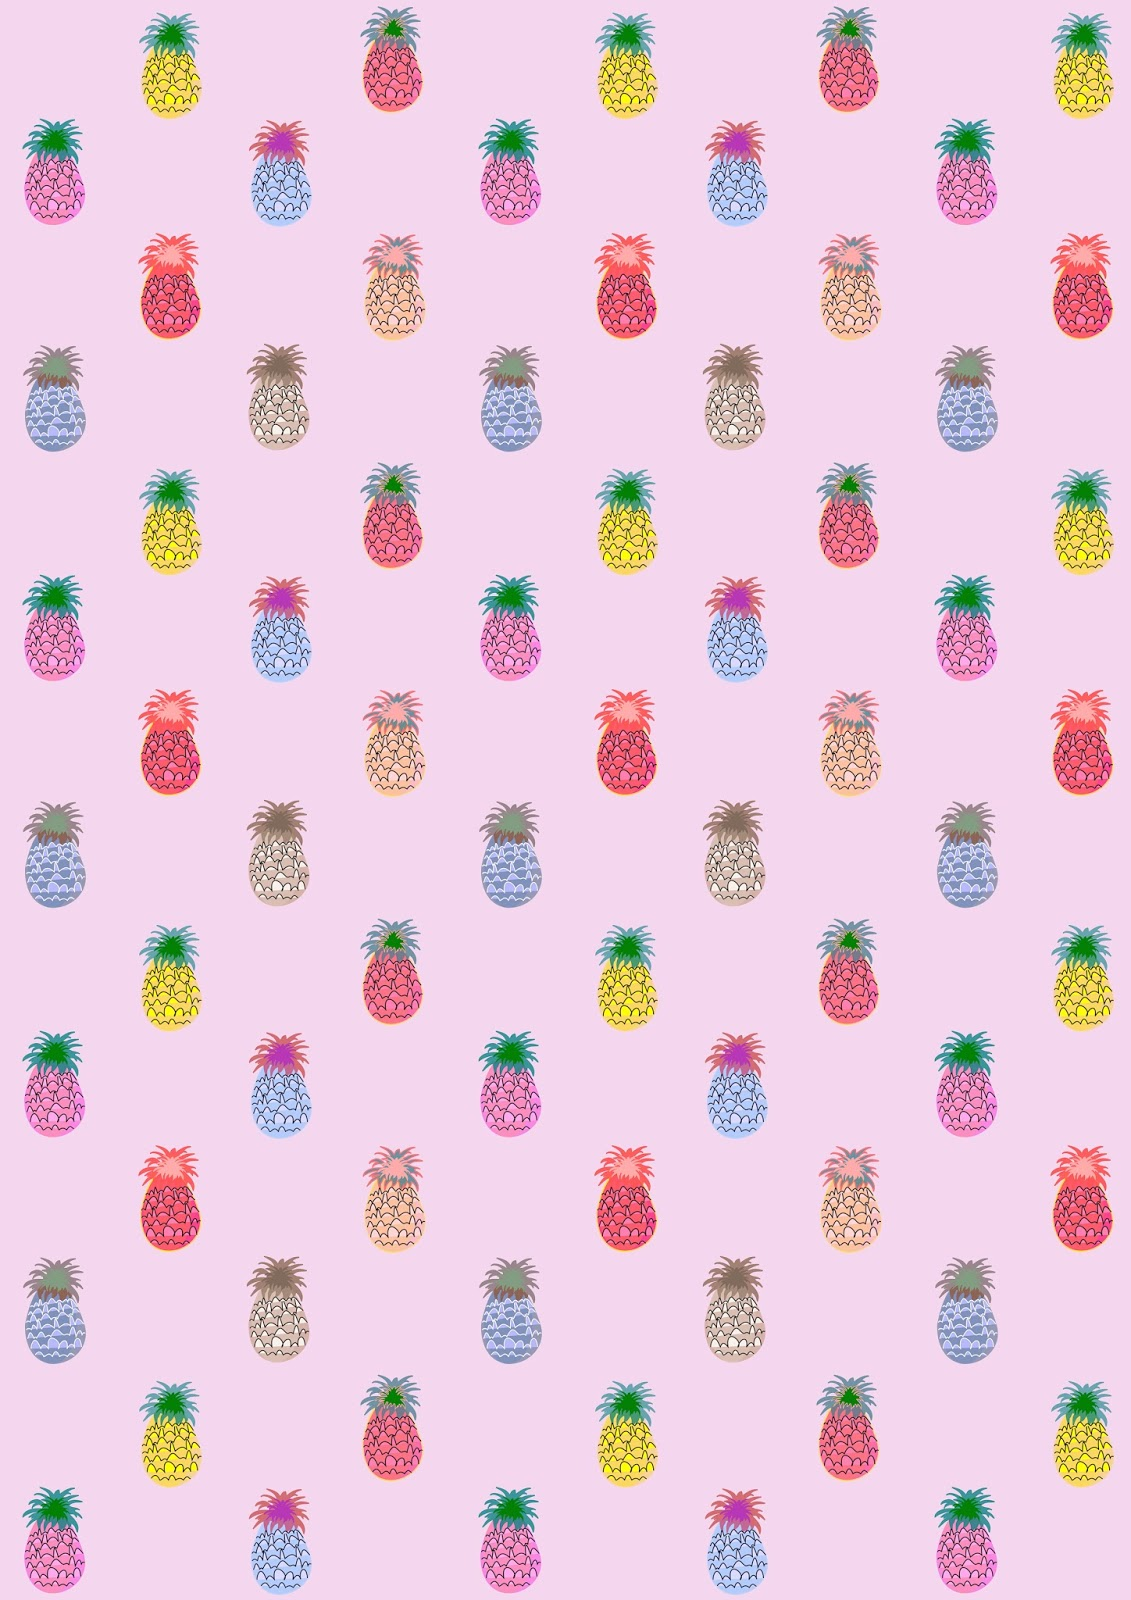 This is an image of Légend Printable Pattern Paper